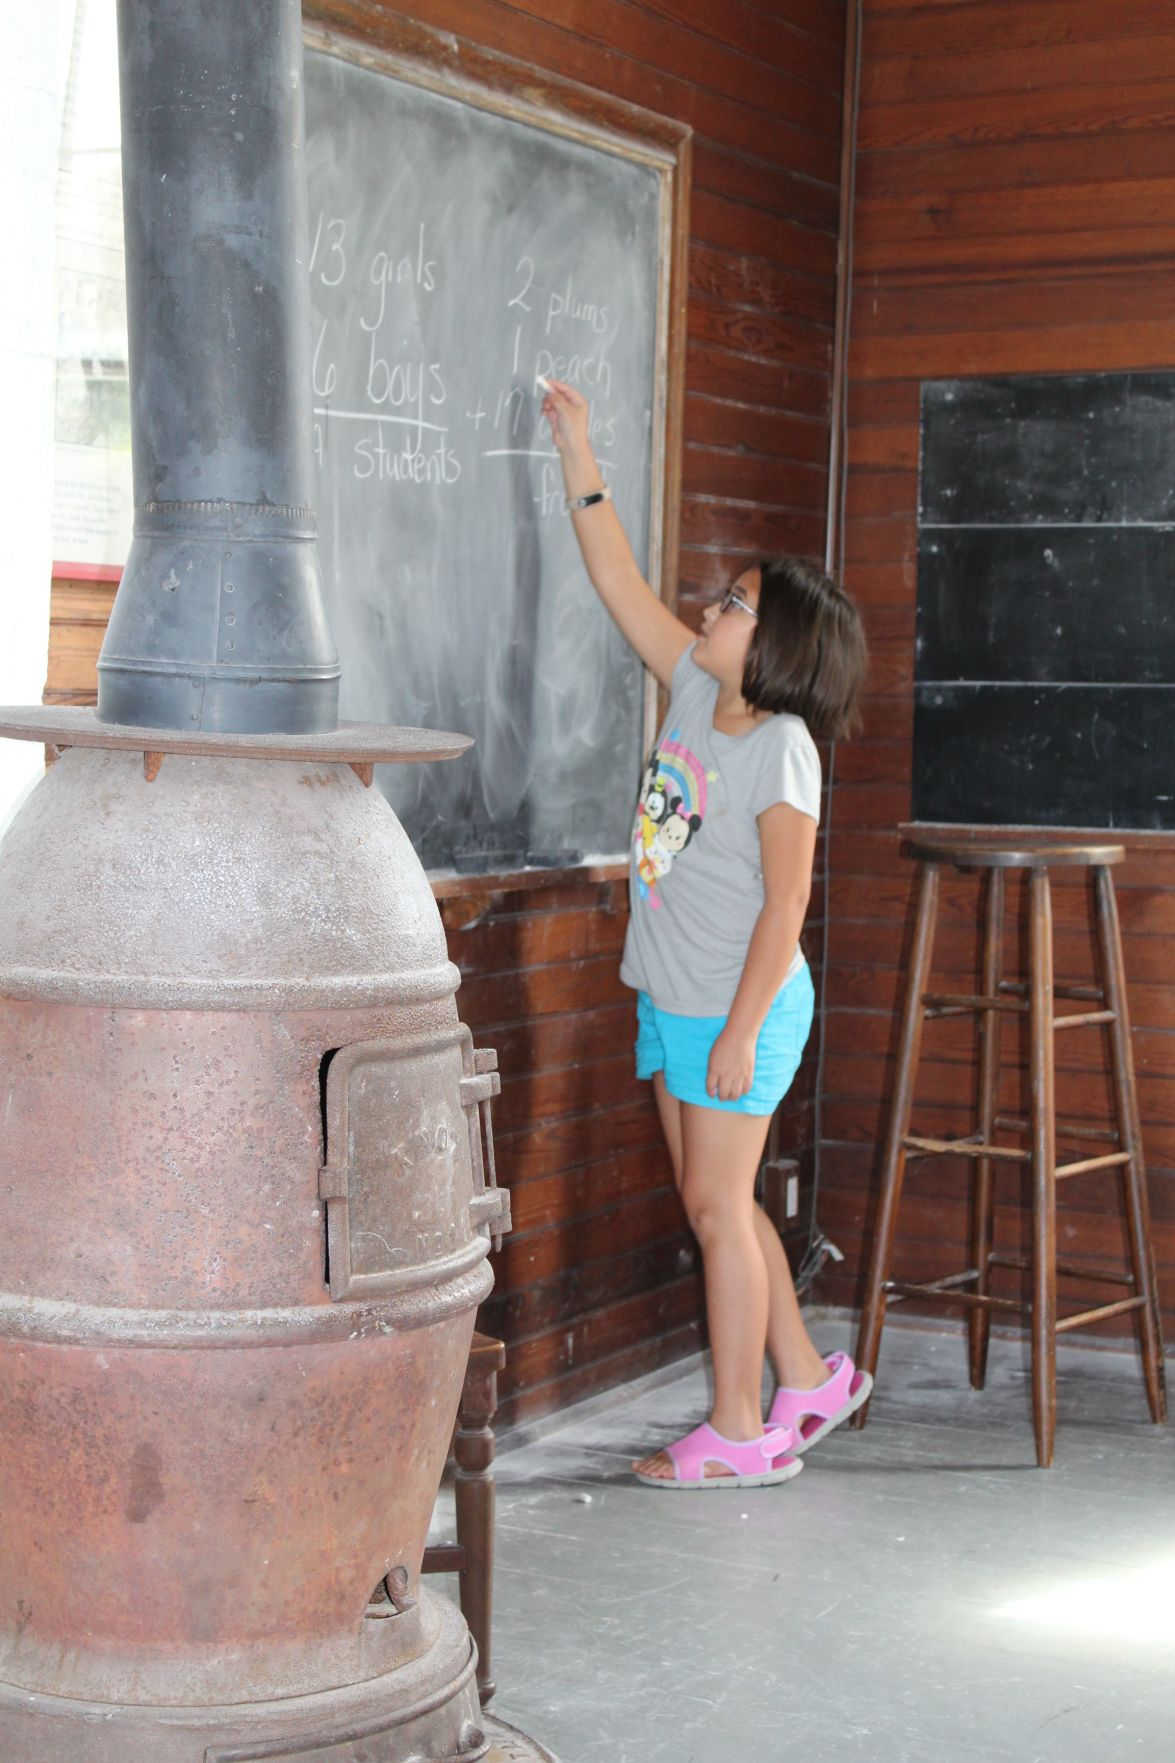 Student writing on board during schoolhouse lesson